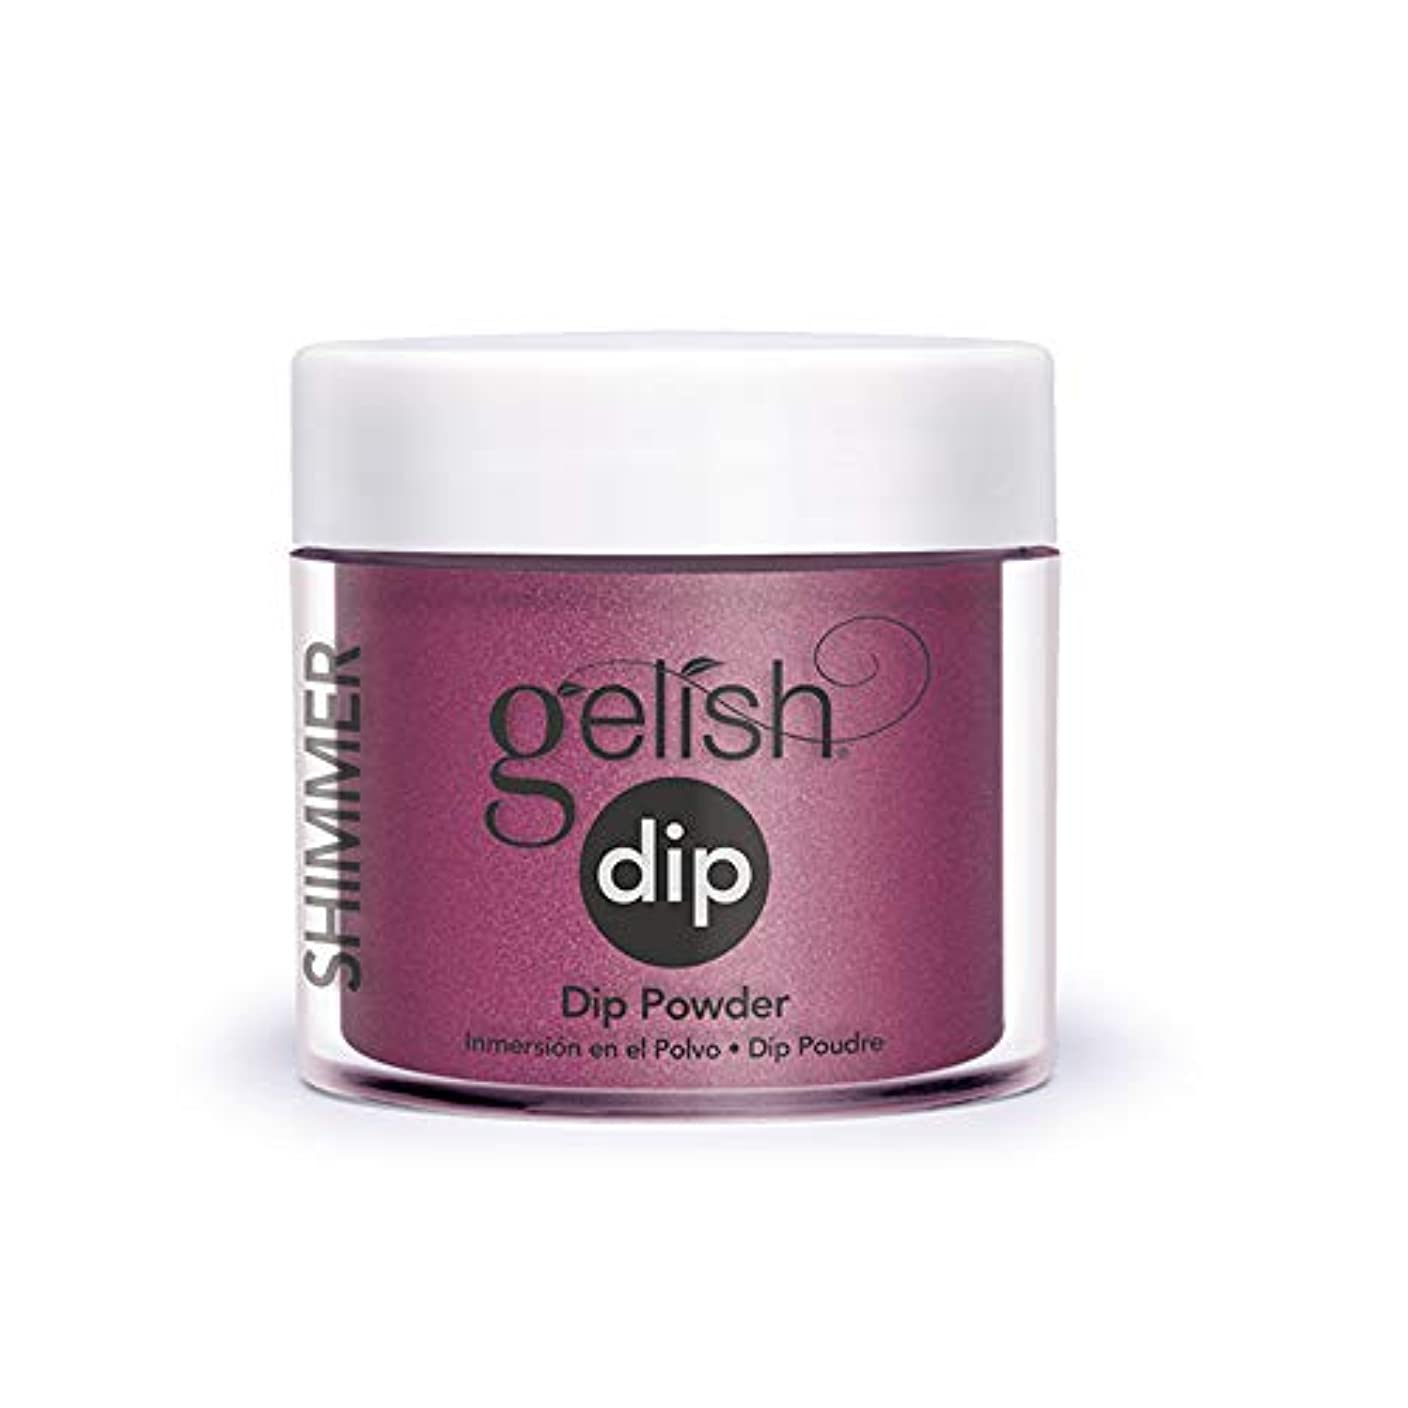 魅了する不確実注目すべきHarmony Gelish - Acrylic Dip Powder - I'm So Hot - 23g / 0.8oz